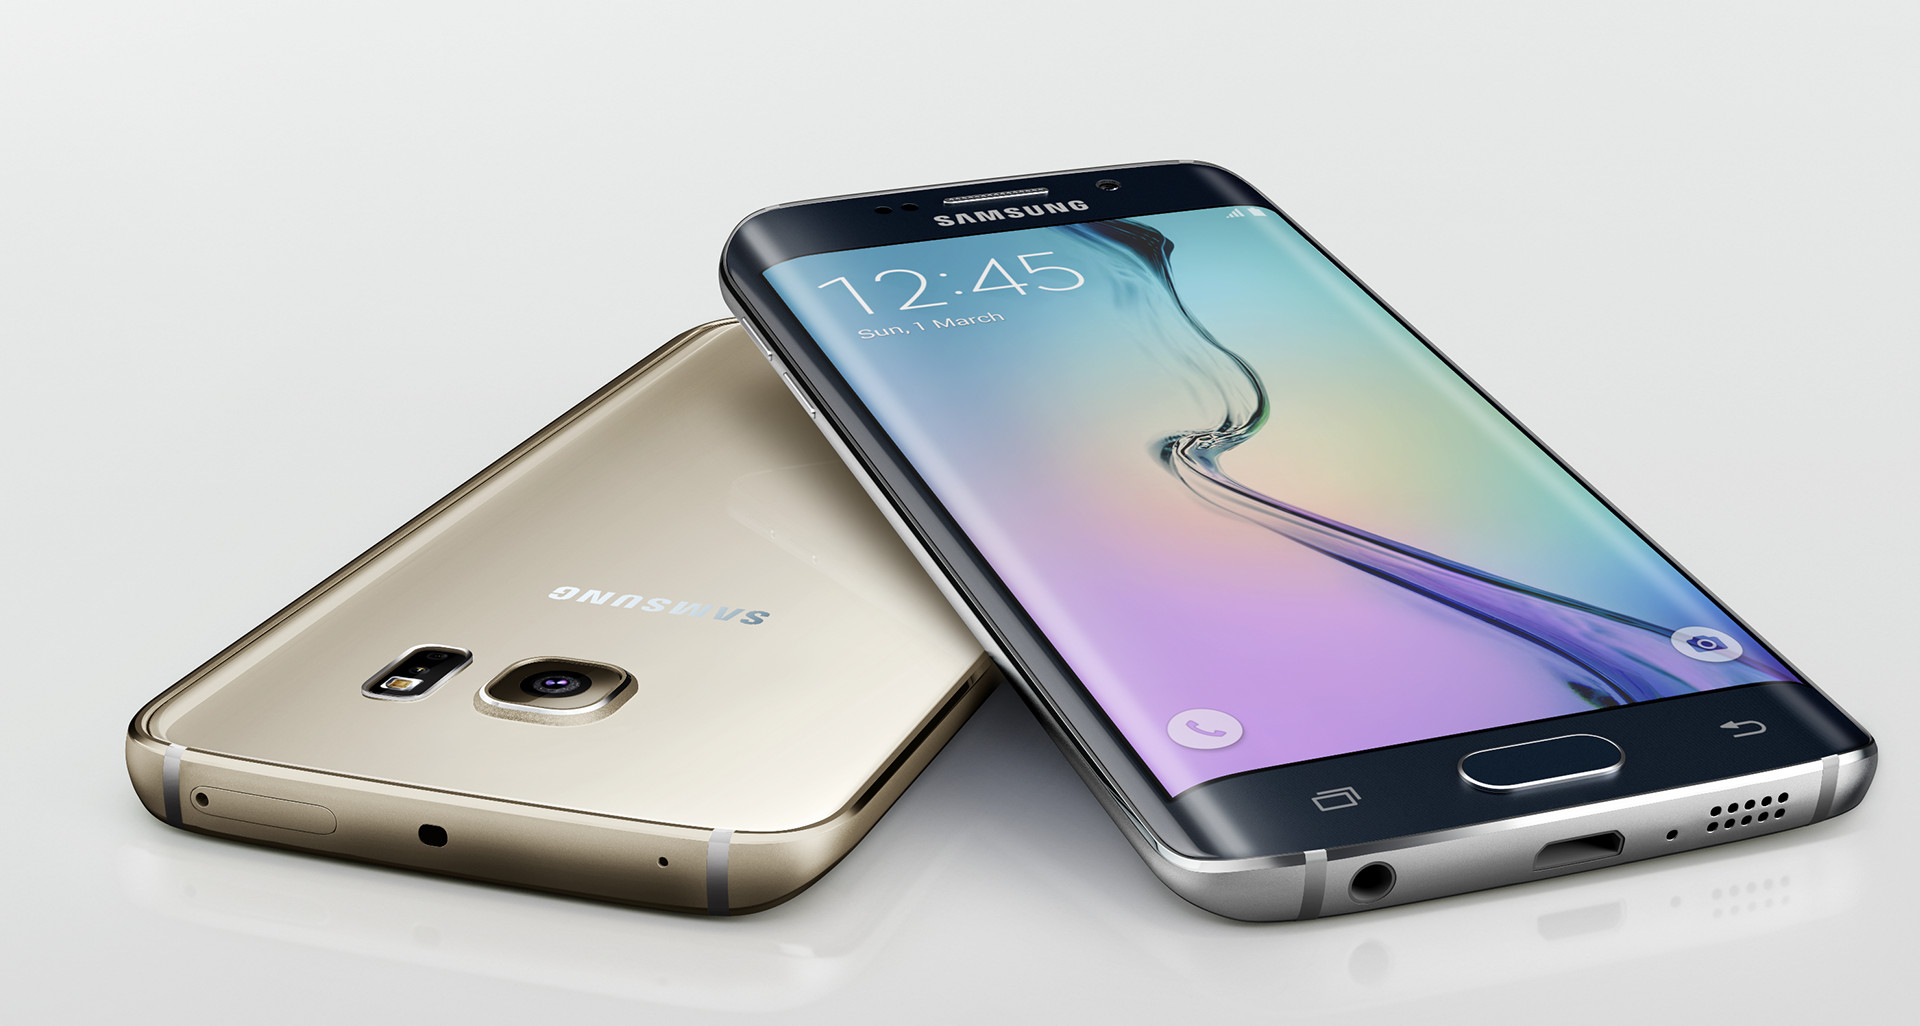 Best Smartphone Deals on Samsung's Products: Galaxy S6 Edge (Unlocked) at $529.99, Galaxy S5 (Refurbished) at $210